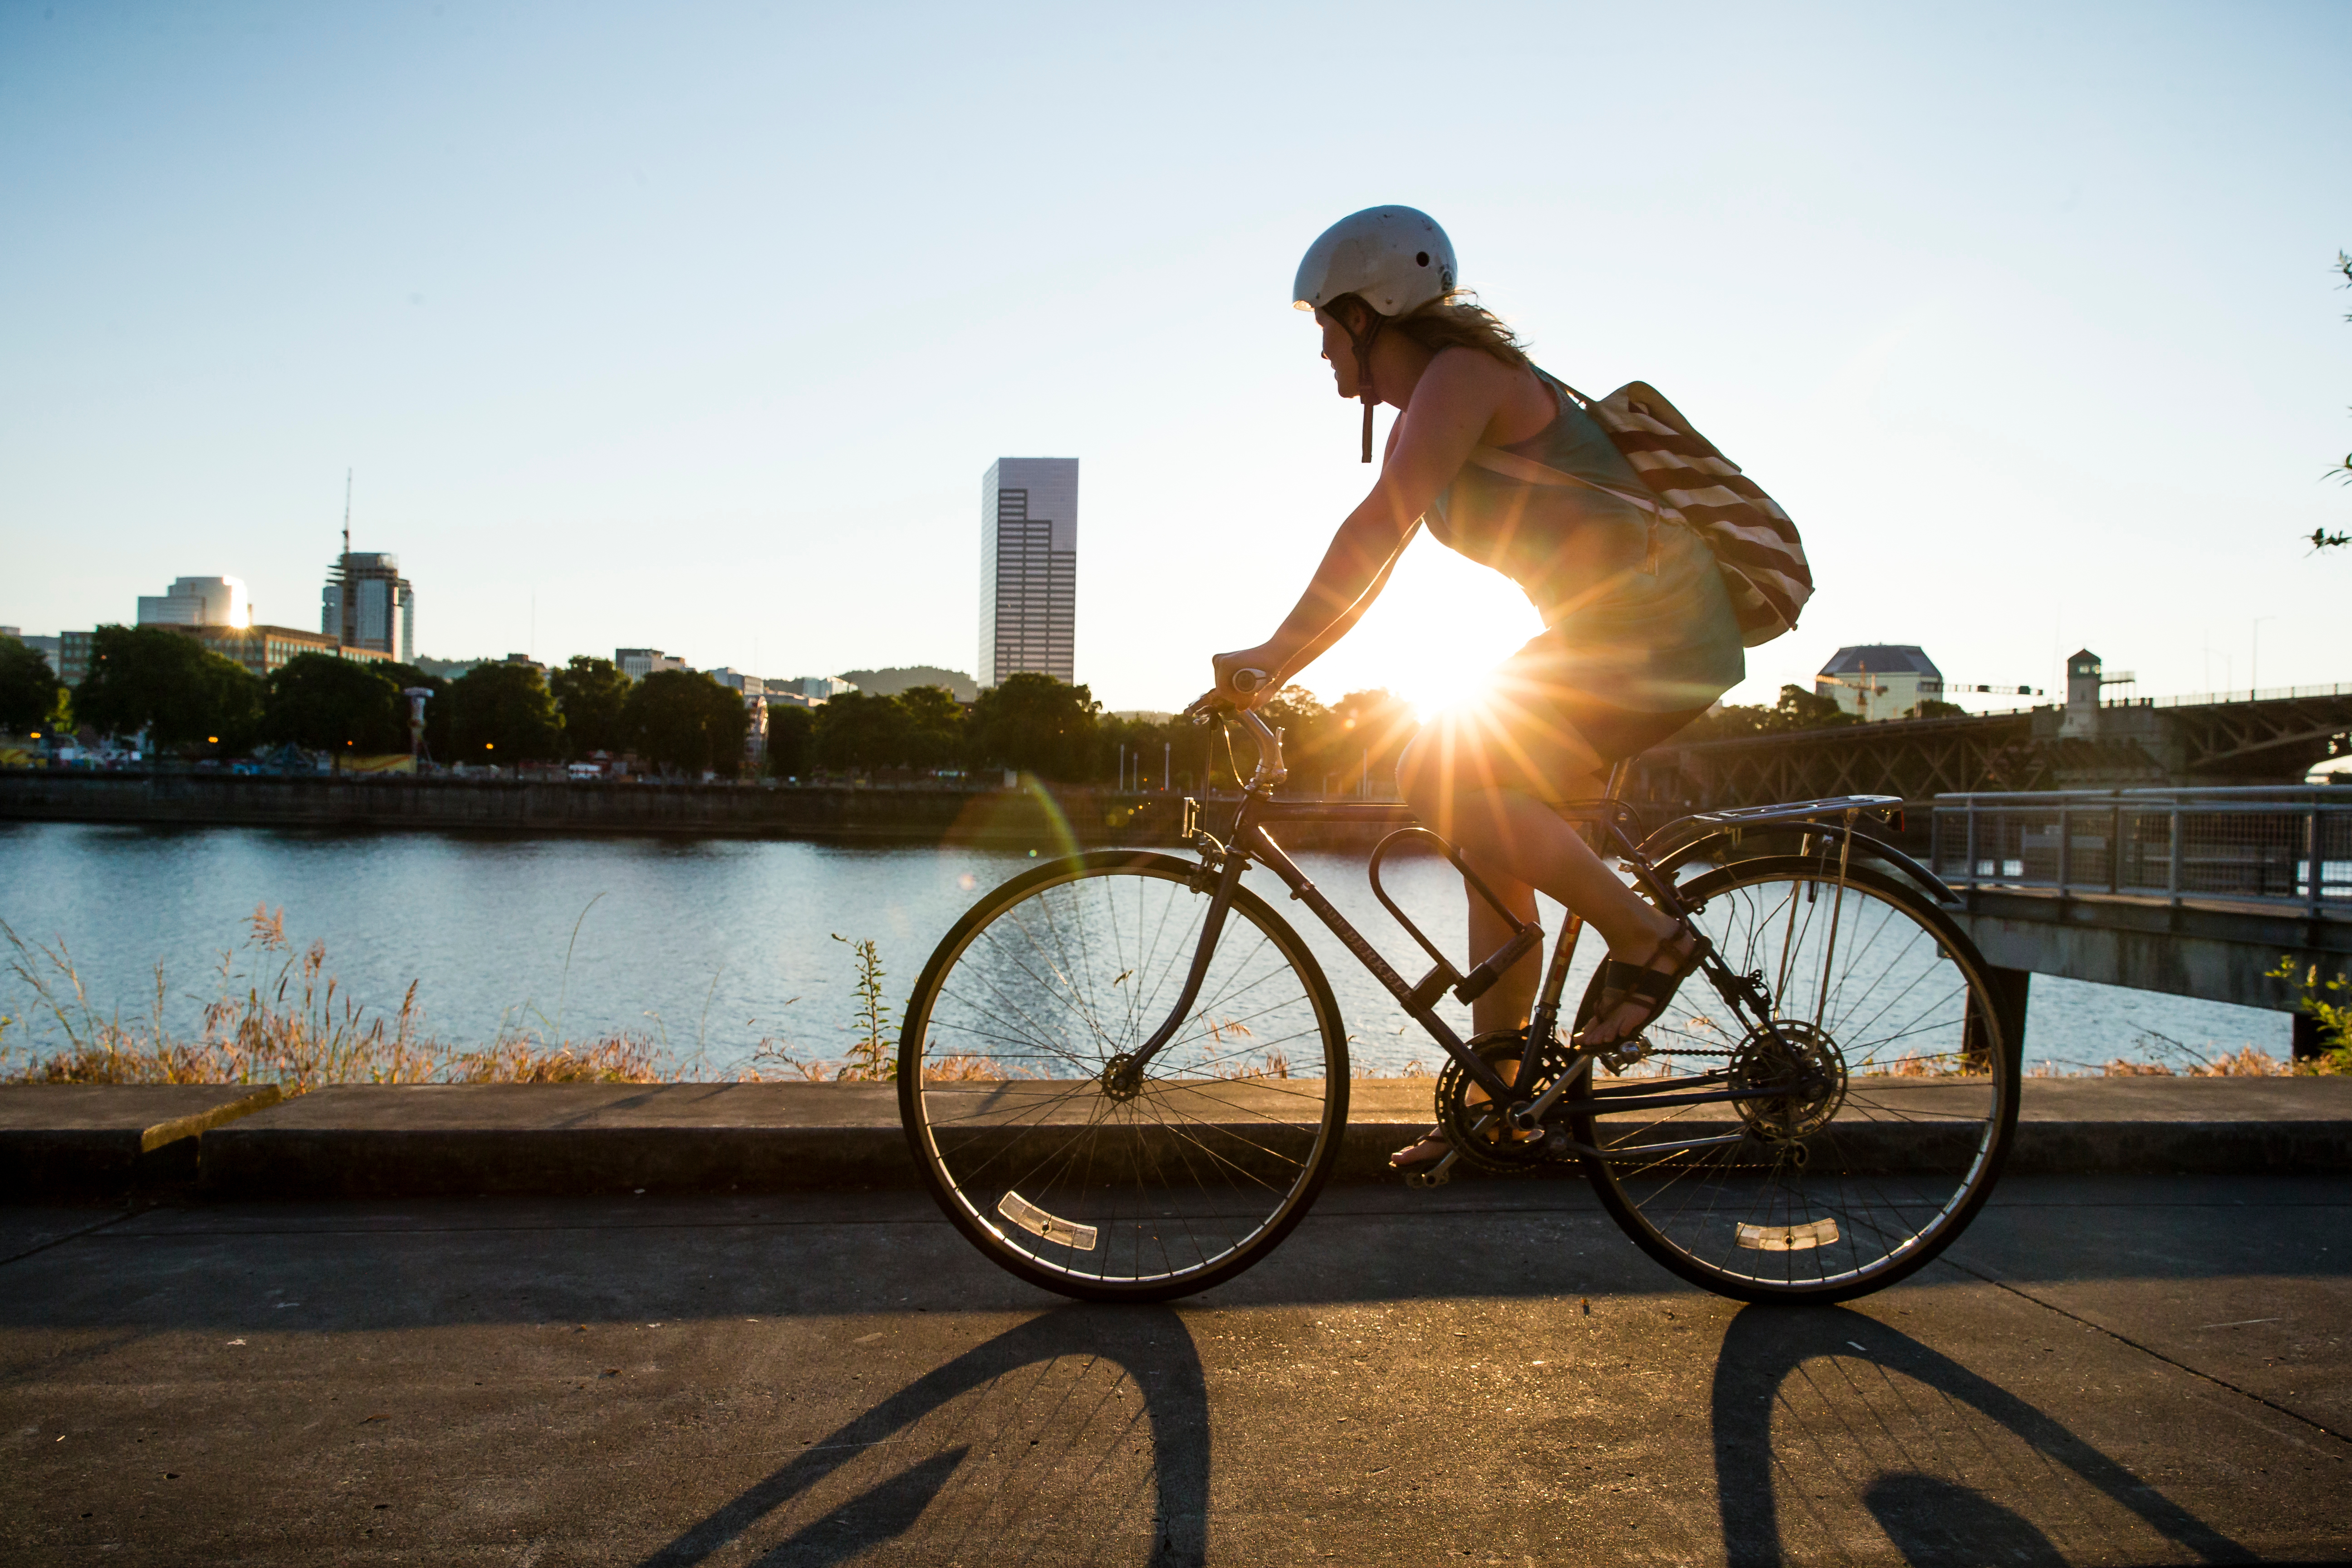 Person cycling by a river with the sun setting on the other side of them.